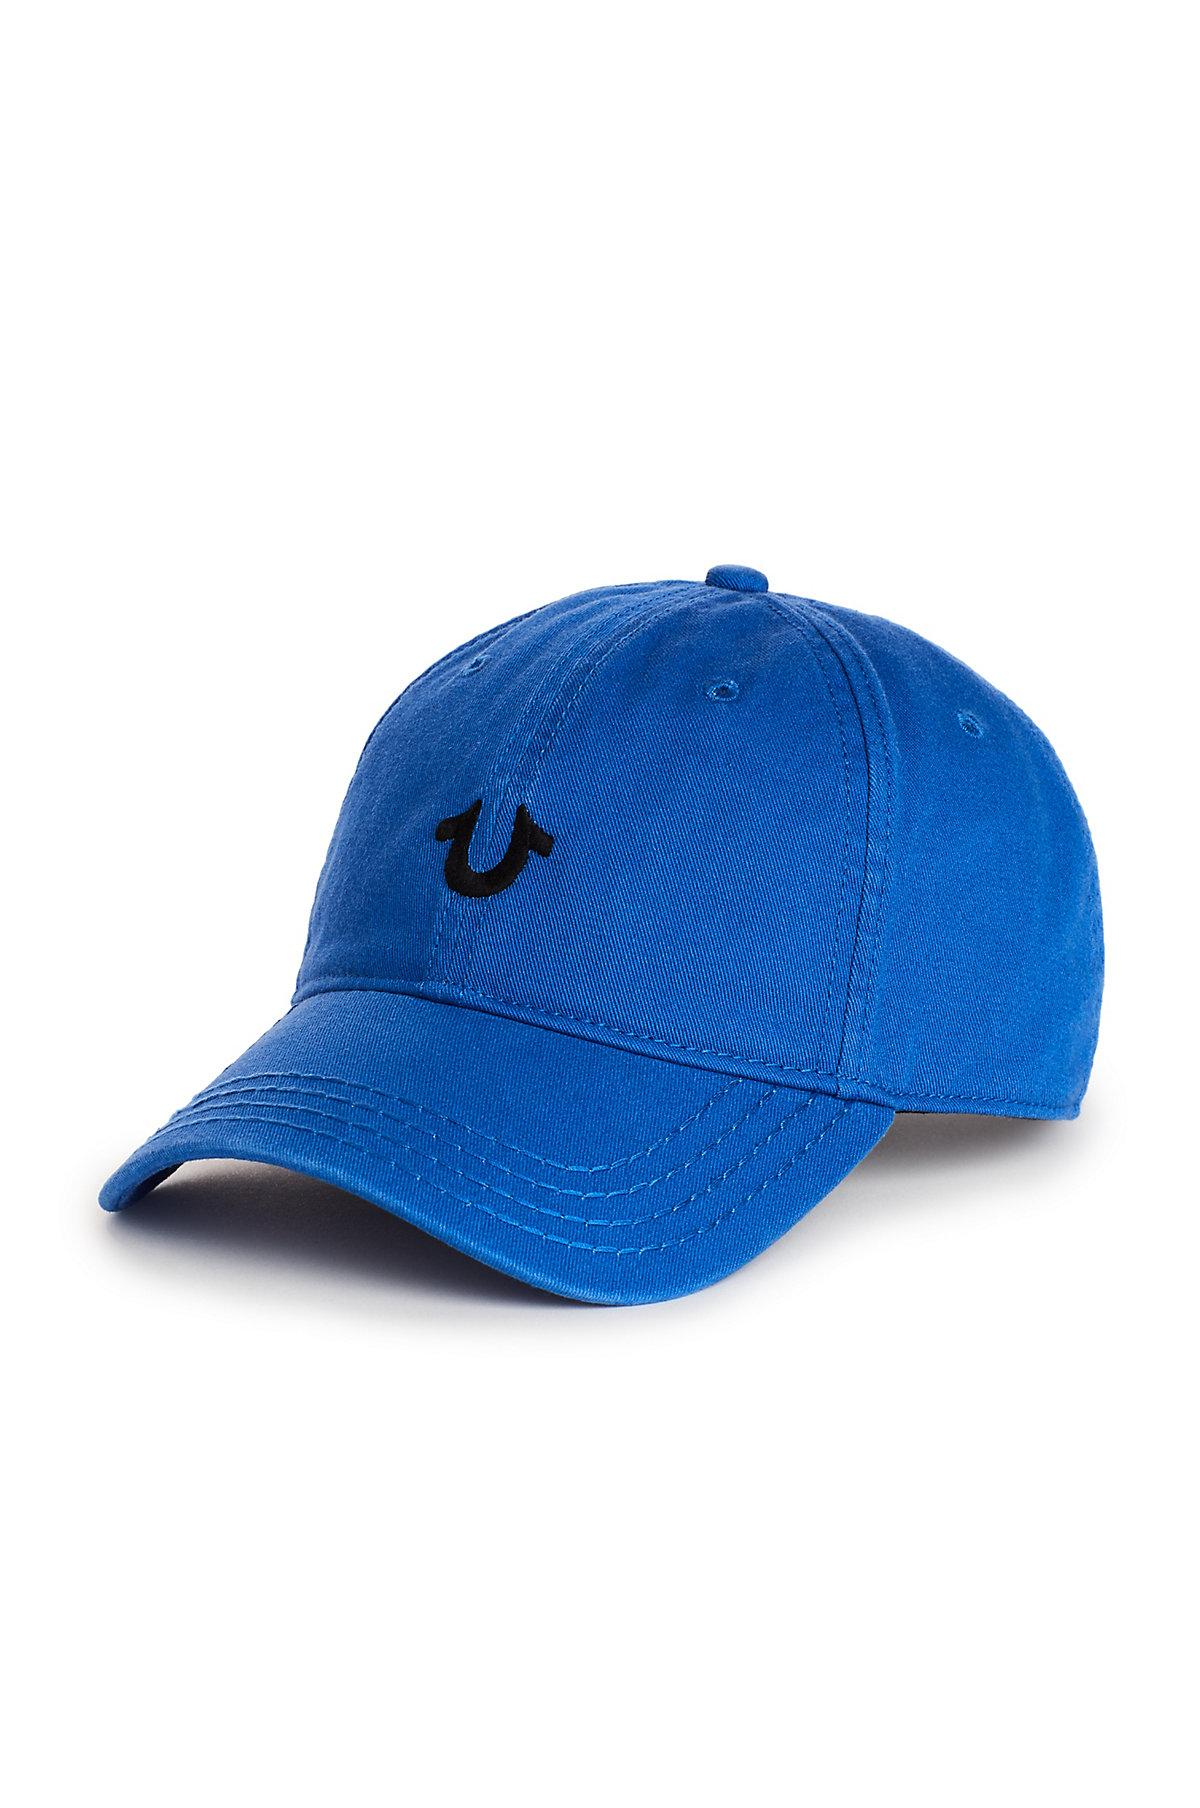 5418ee9c3b94a Lyst - True Religion Core Logo Baseball Cap in Blue for Men